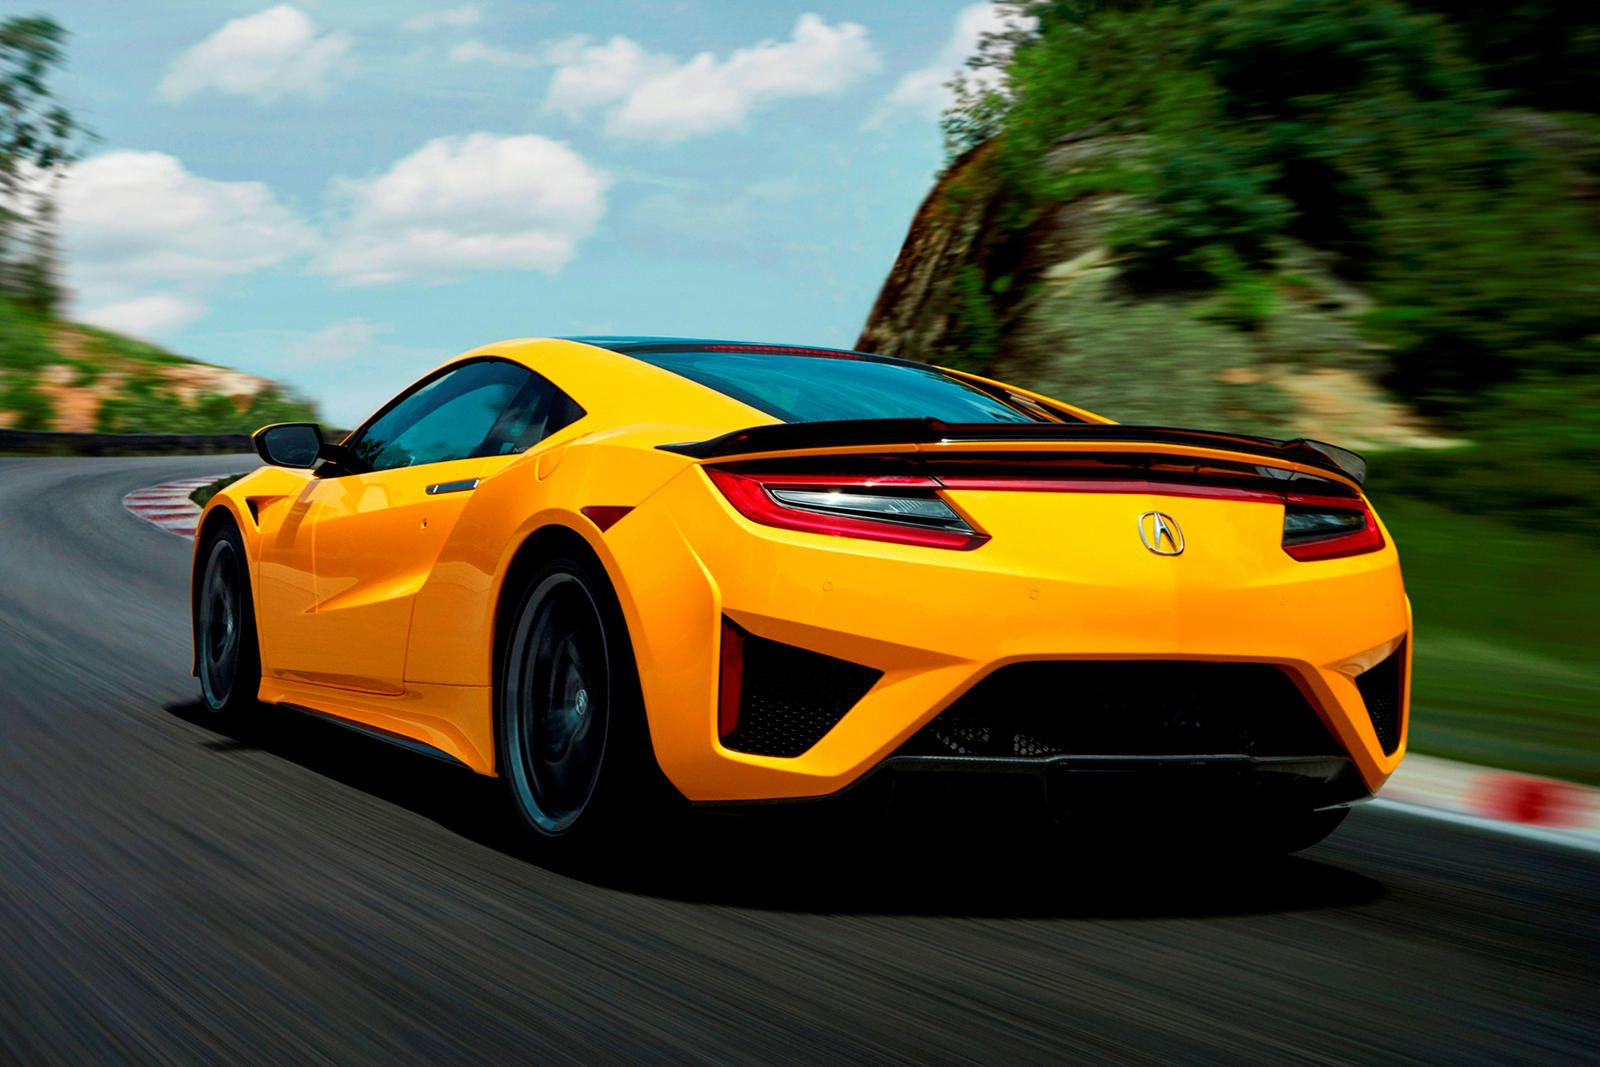 6 Reasons The Acura Nsx Is A Real Daily Driver Supercar The Term Daily Driver Supercar Is Grossly Overused But Not In This Case Acura Nsx Nsx Super Cars